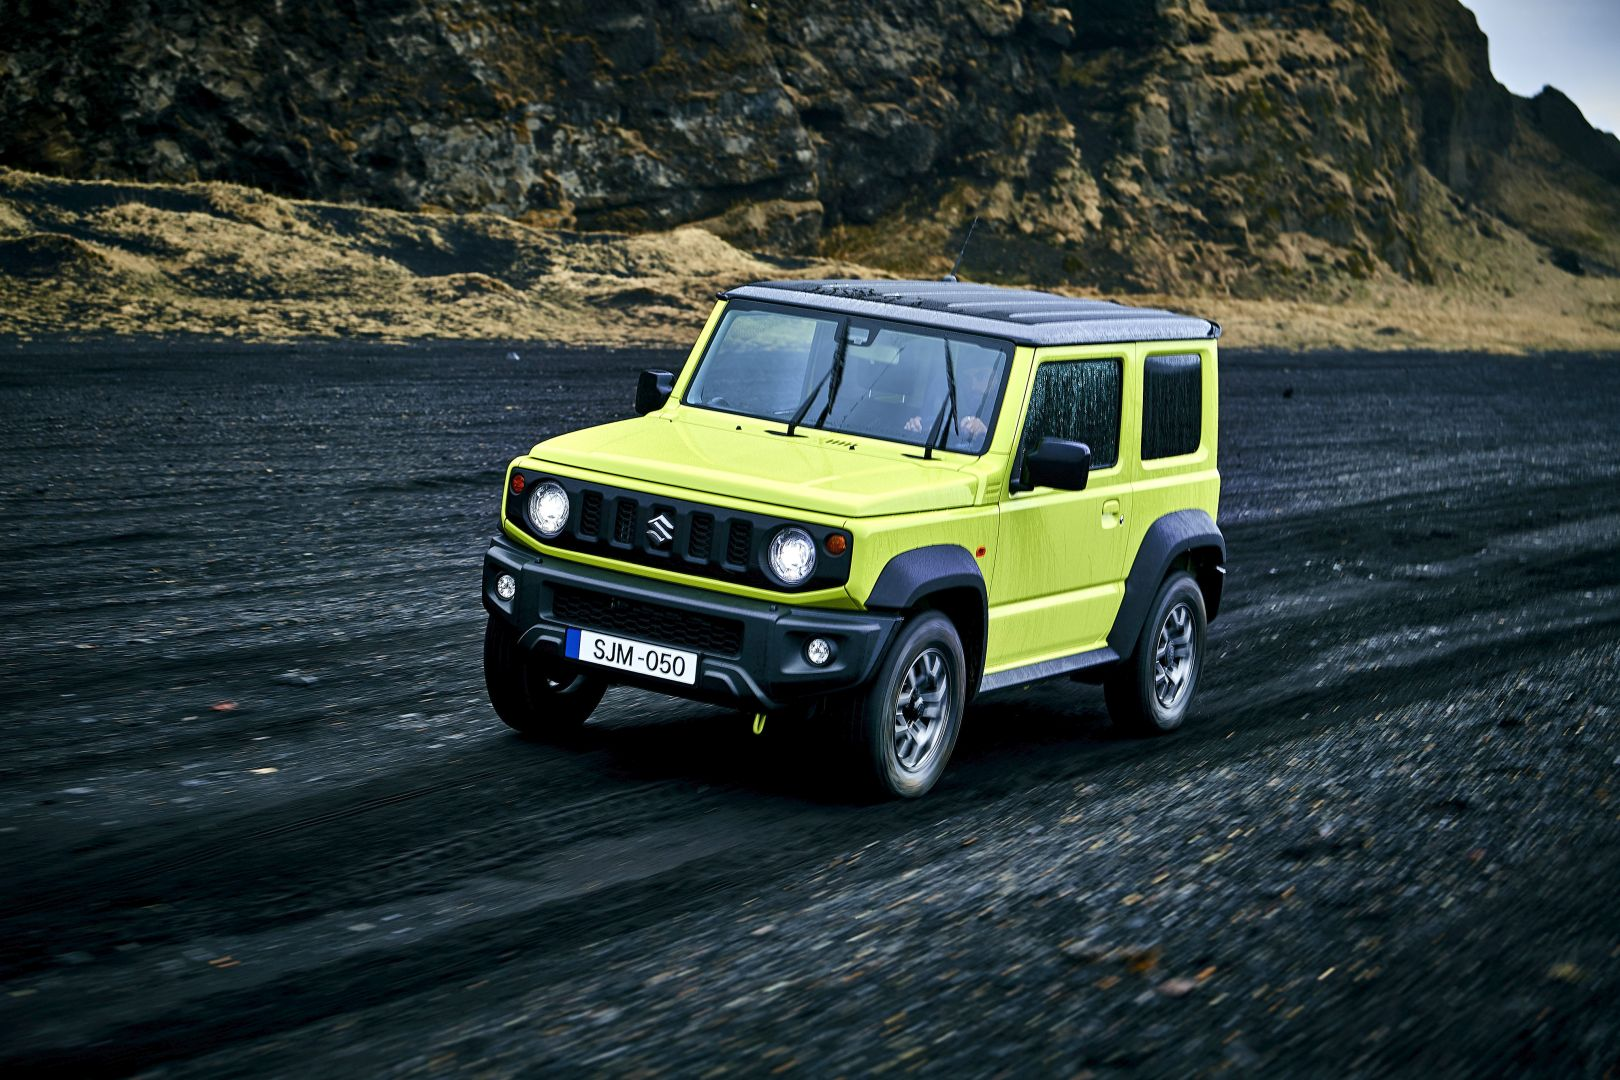 suzuki-confirms-very-limited-numbers-for-the-2020-jimny-in-europe-140551_1